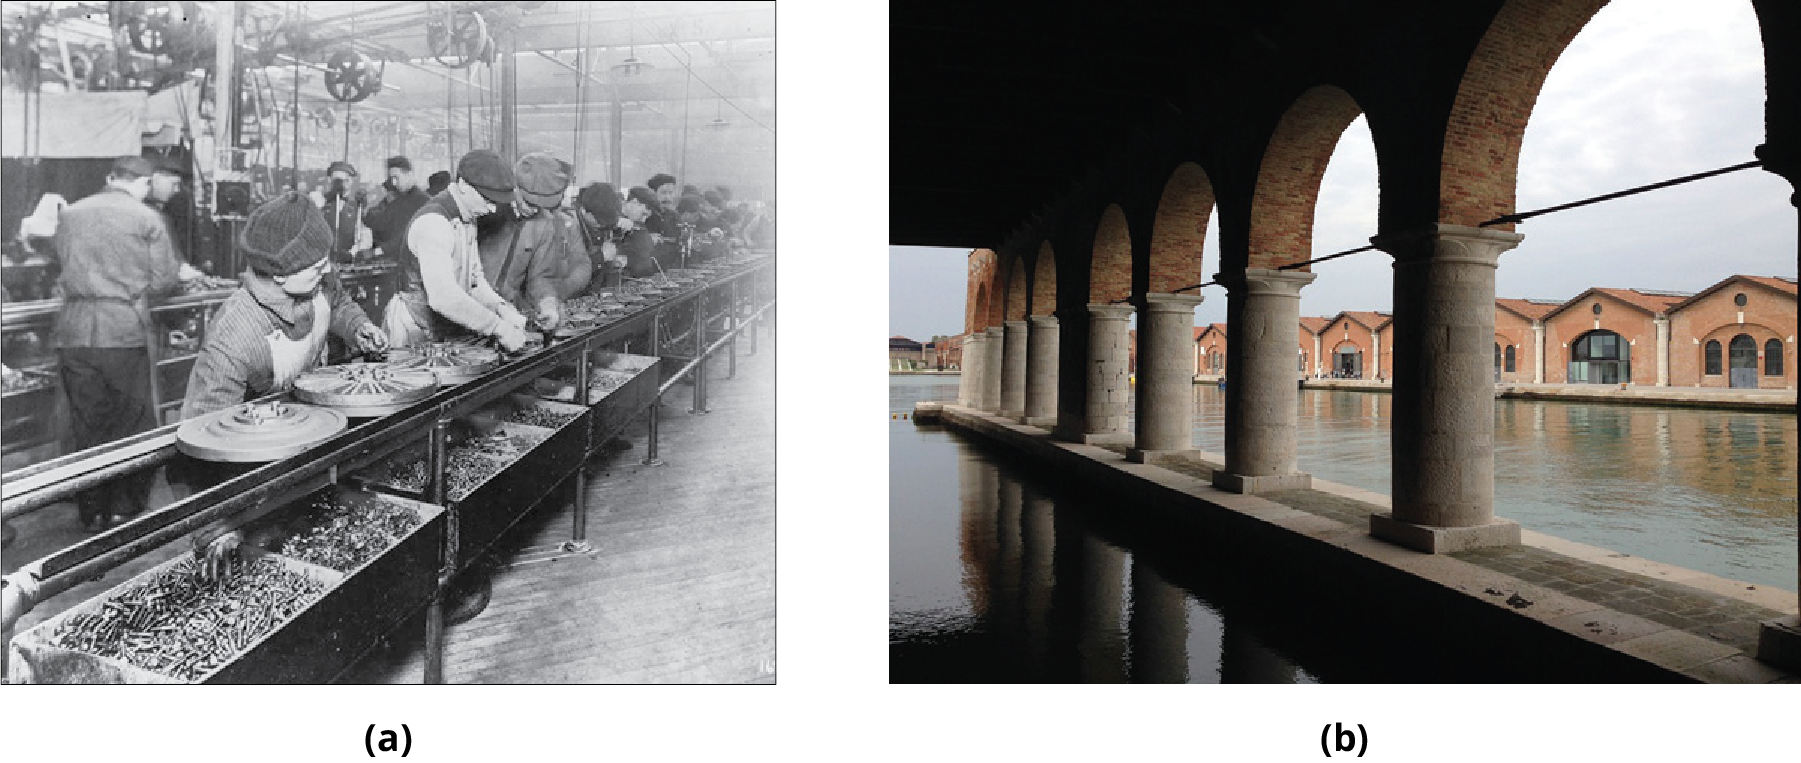 (a) Photo of workers on an assembly line. (b) Photo of the Venetian Arsenal.